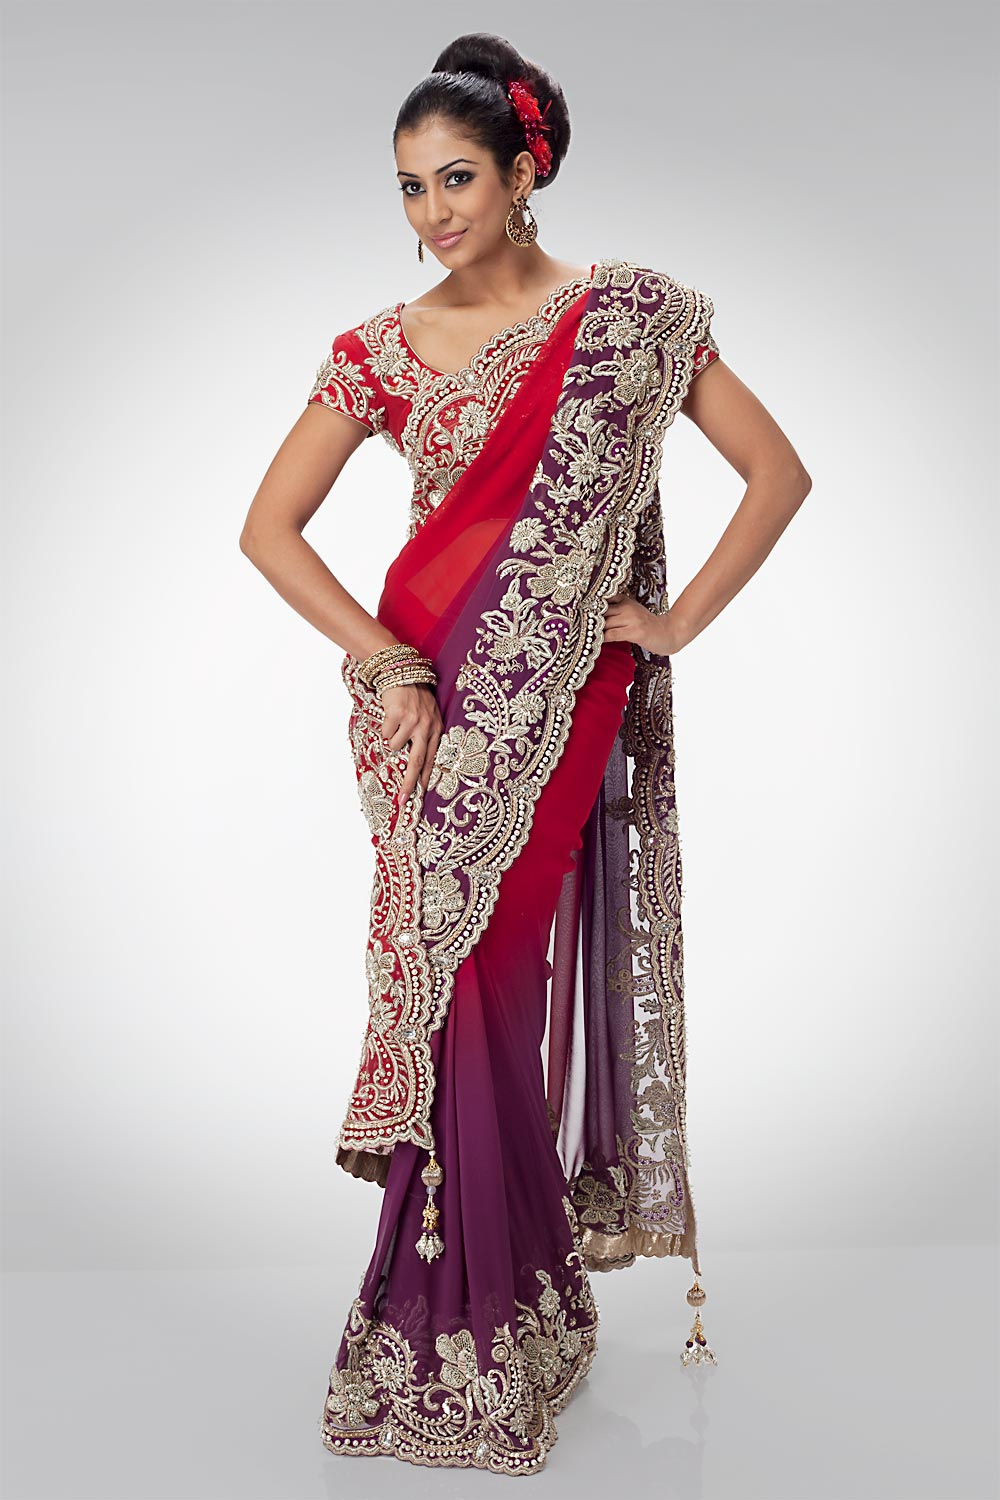 Chicboutique Bridal Sarees Indian Bridal Sarees